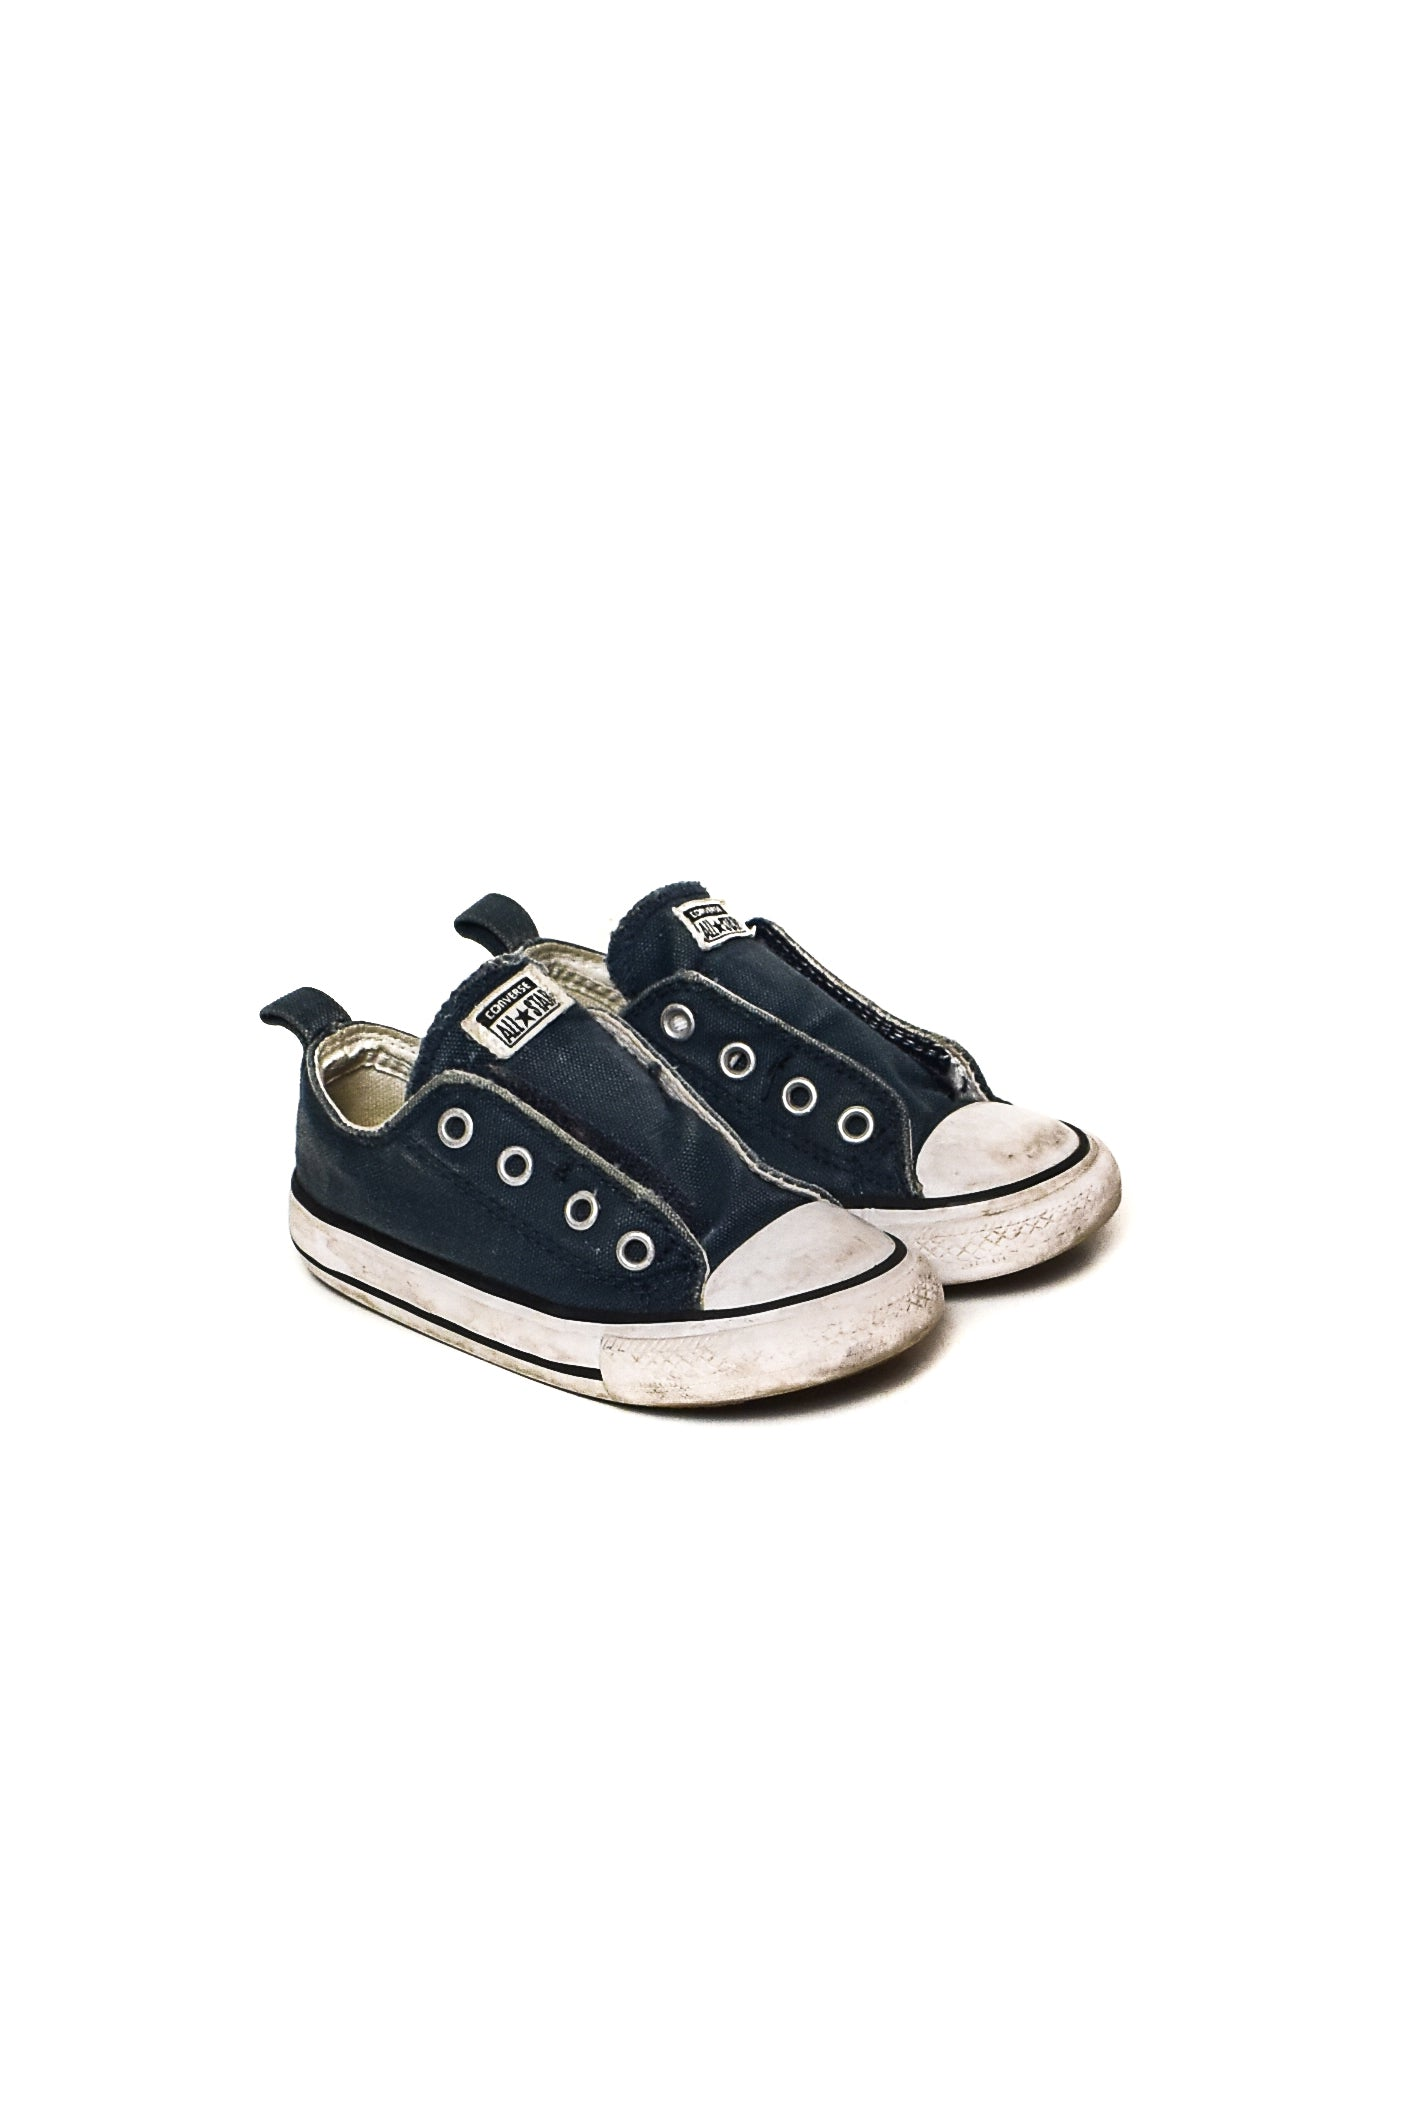 10007655 Converse Kids ~ Shoes 3T (US 8) at Retykle